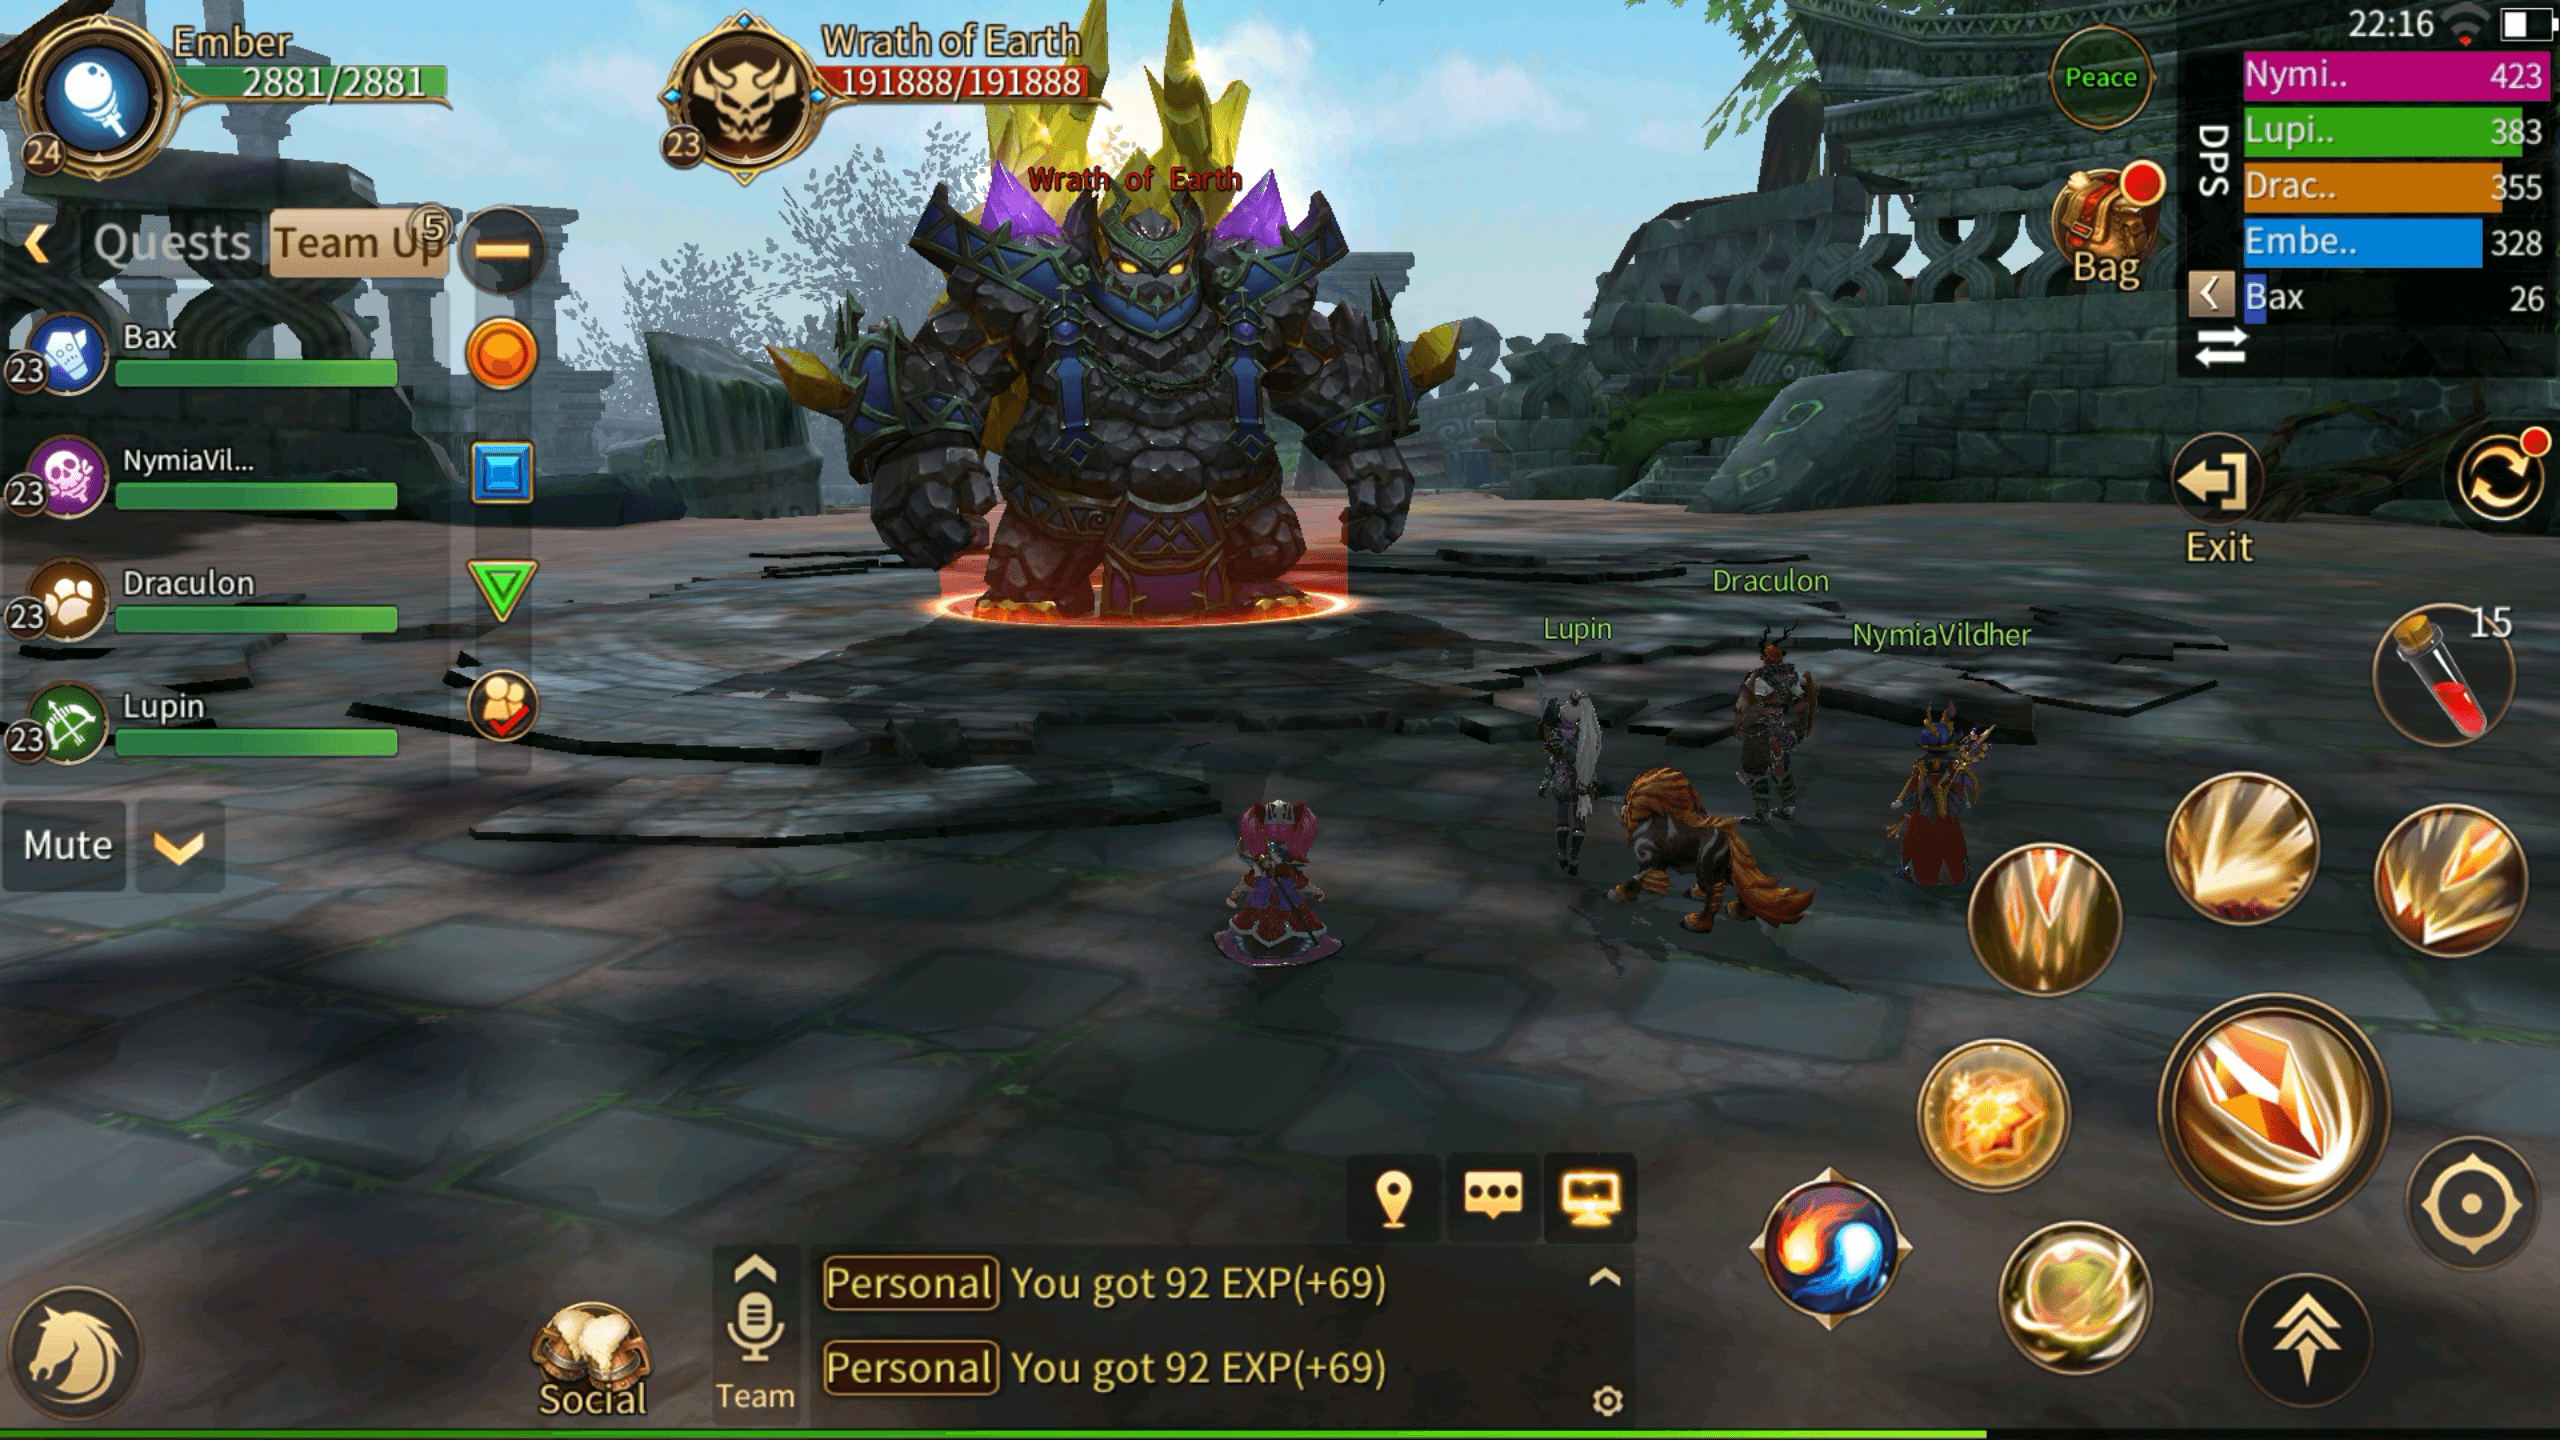 Play Era of Legends Fantasy MMORPG on PC with BlueStacks